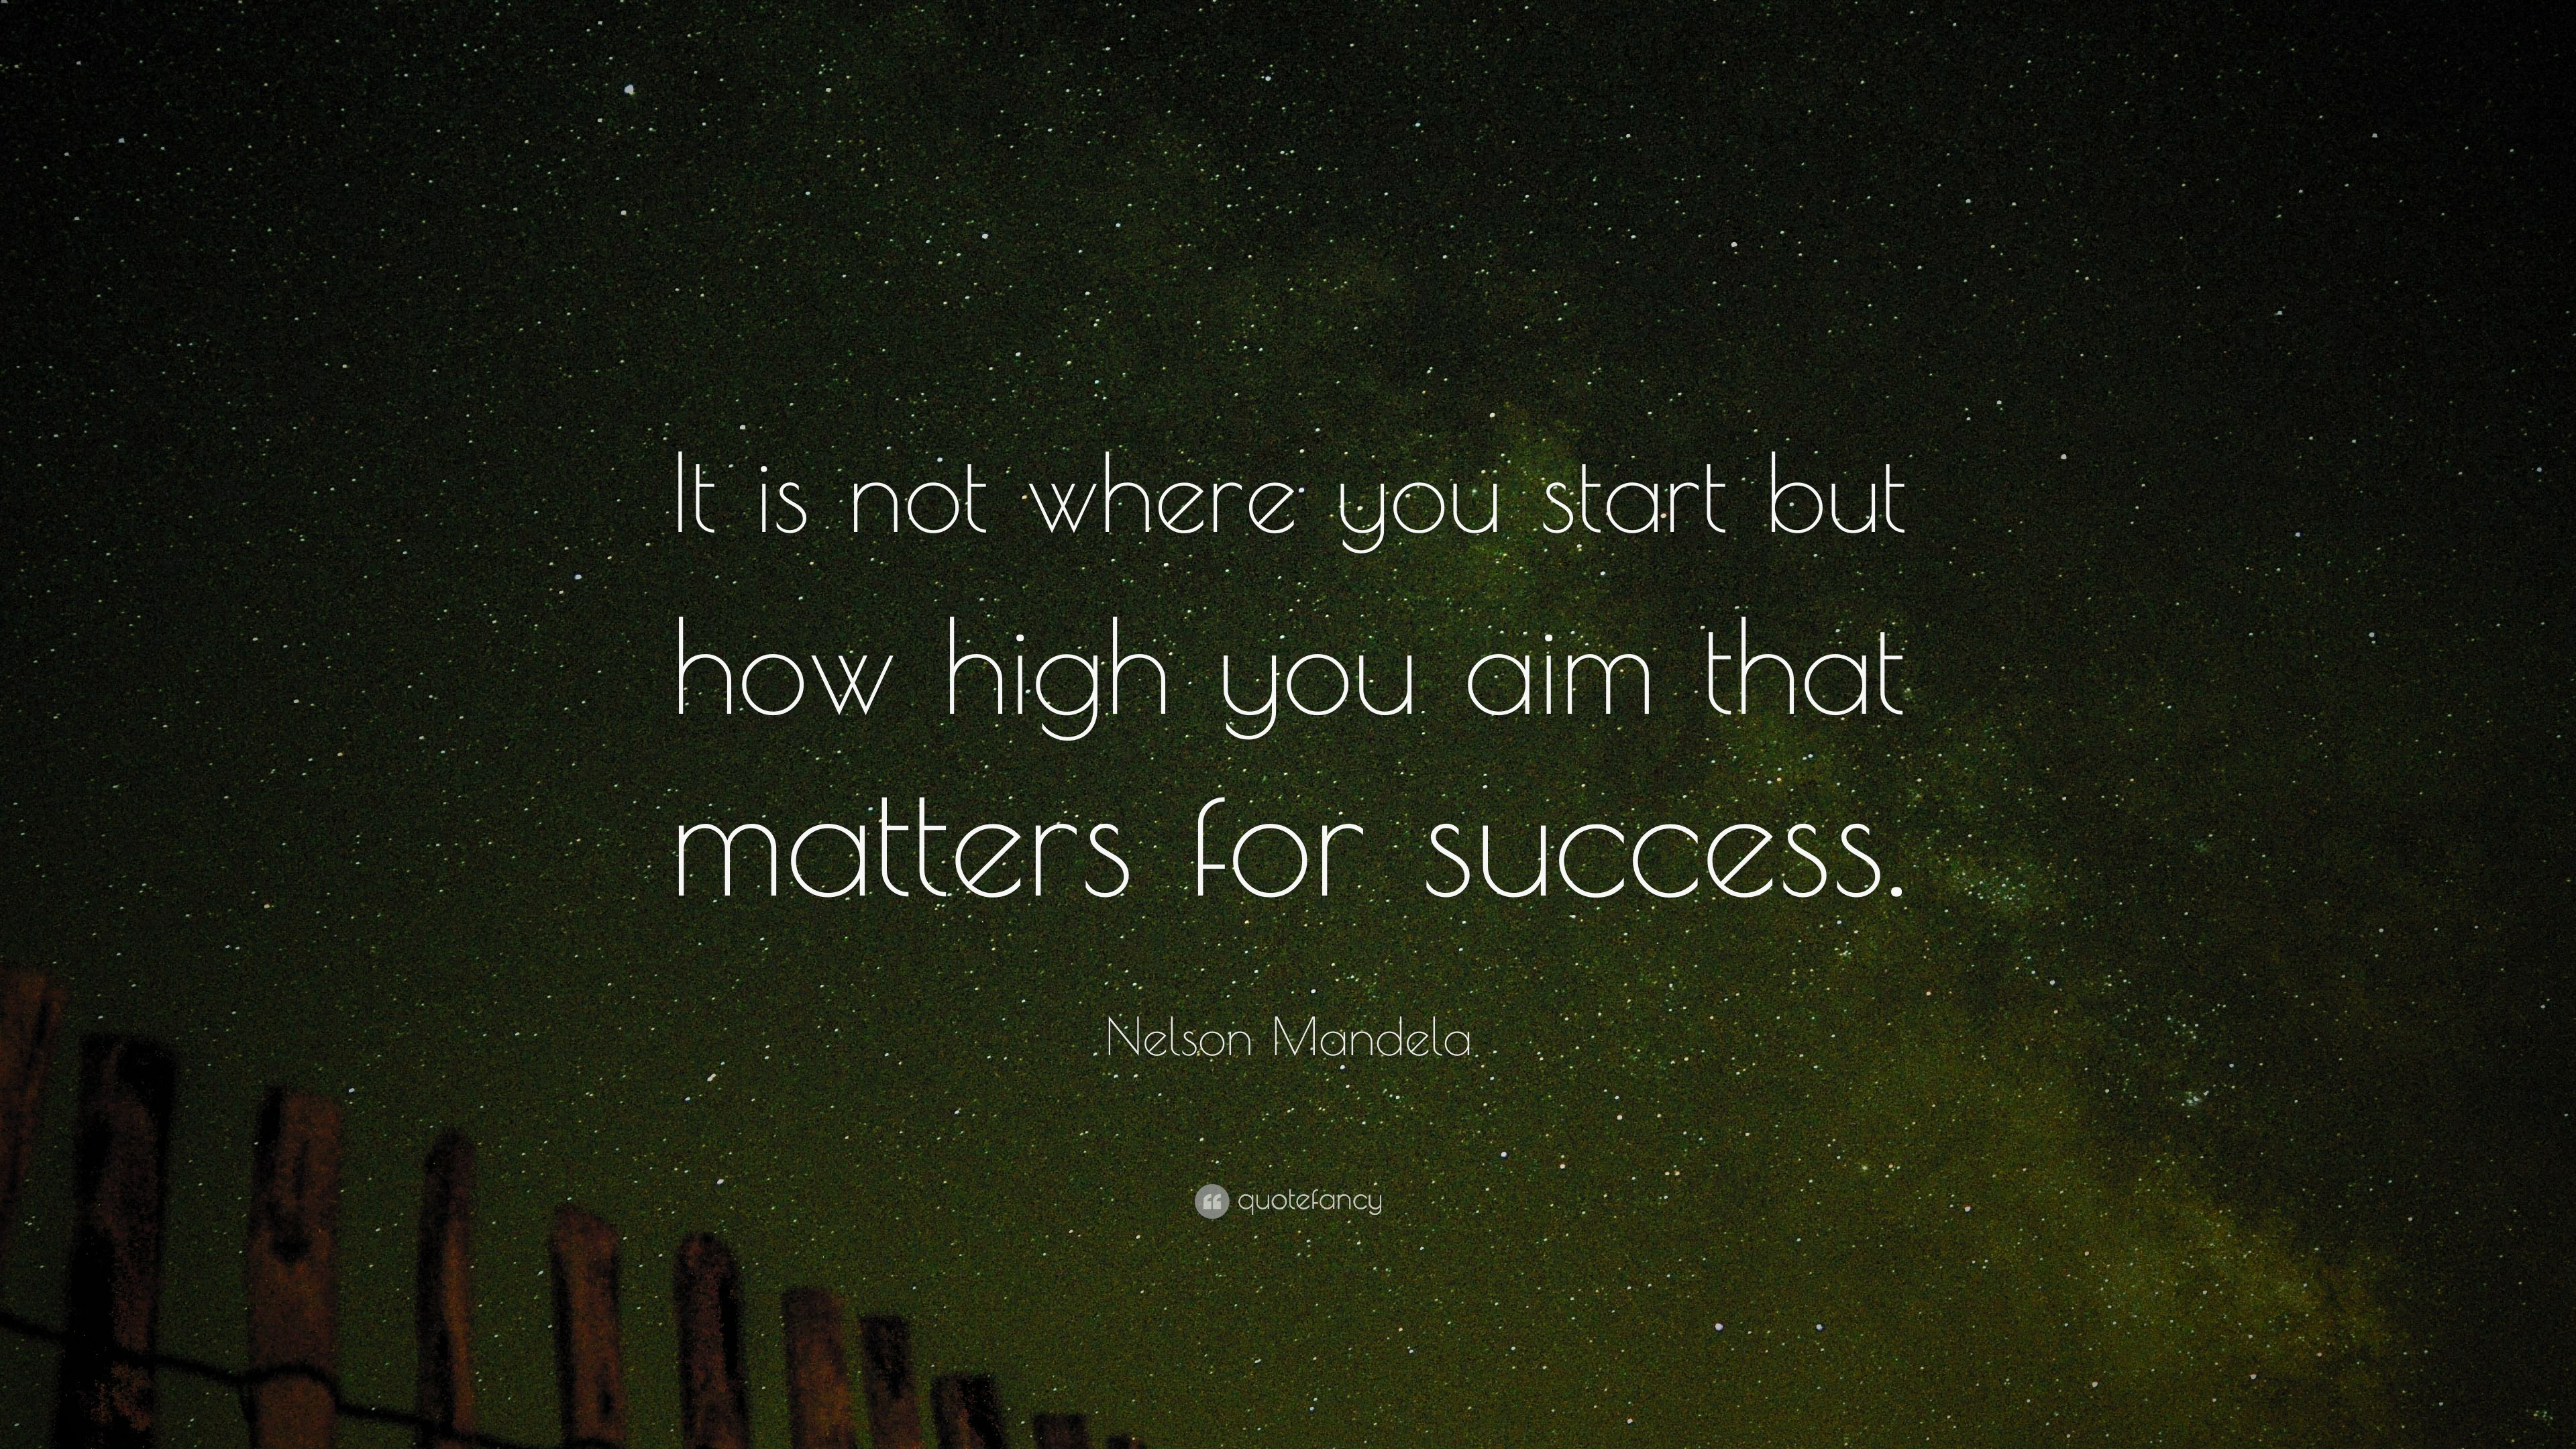 Nelson Mandela Quote: U201cIt Is Not Where You Start But How High You Aim